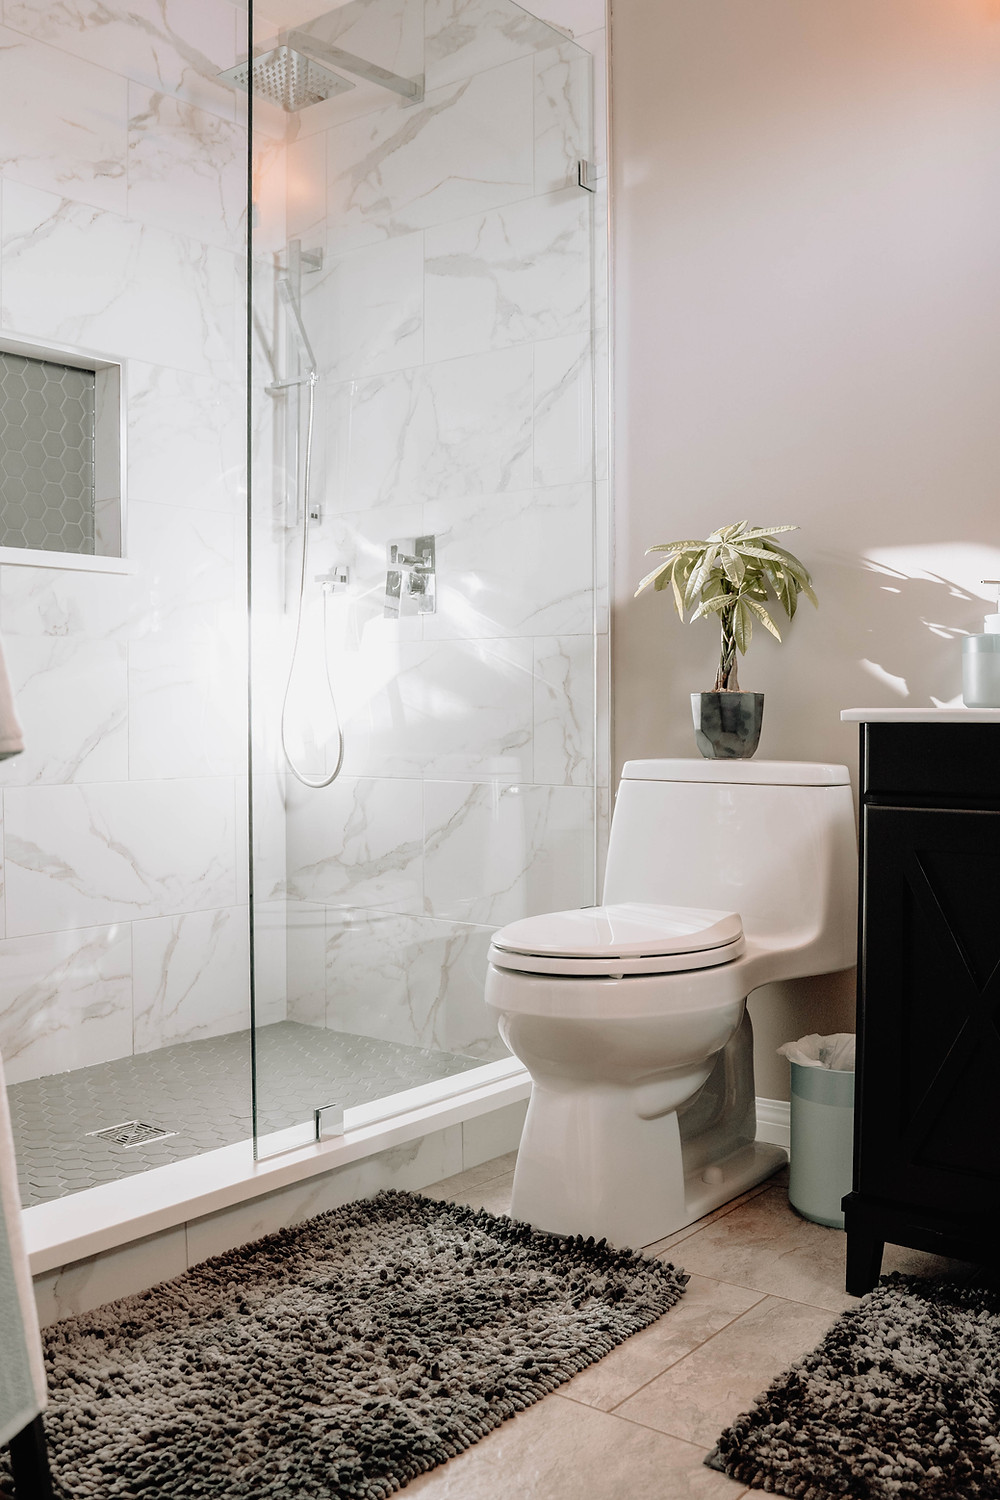 image of a bathroom with toilet and standing shower